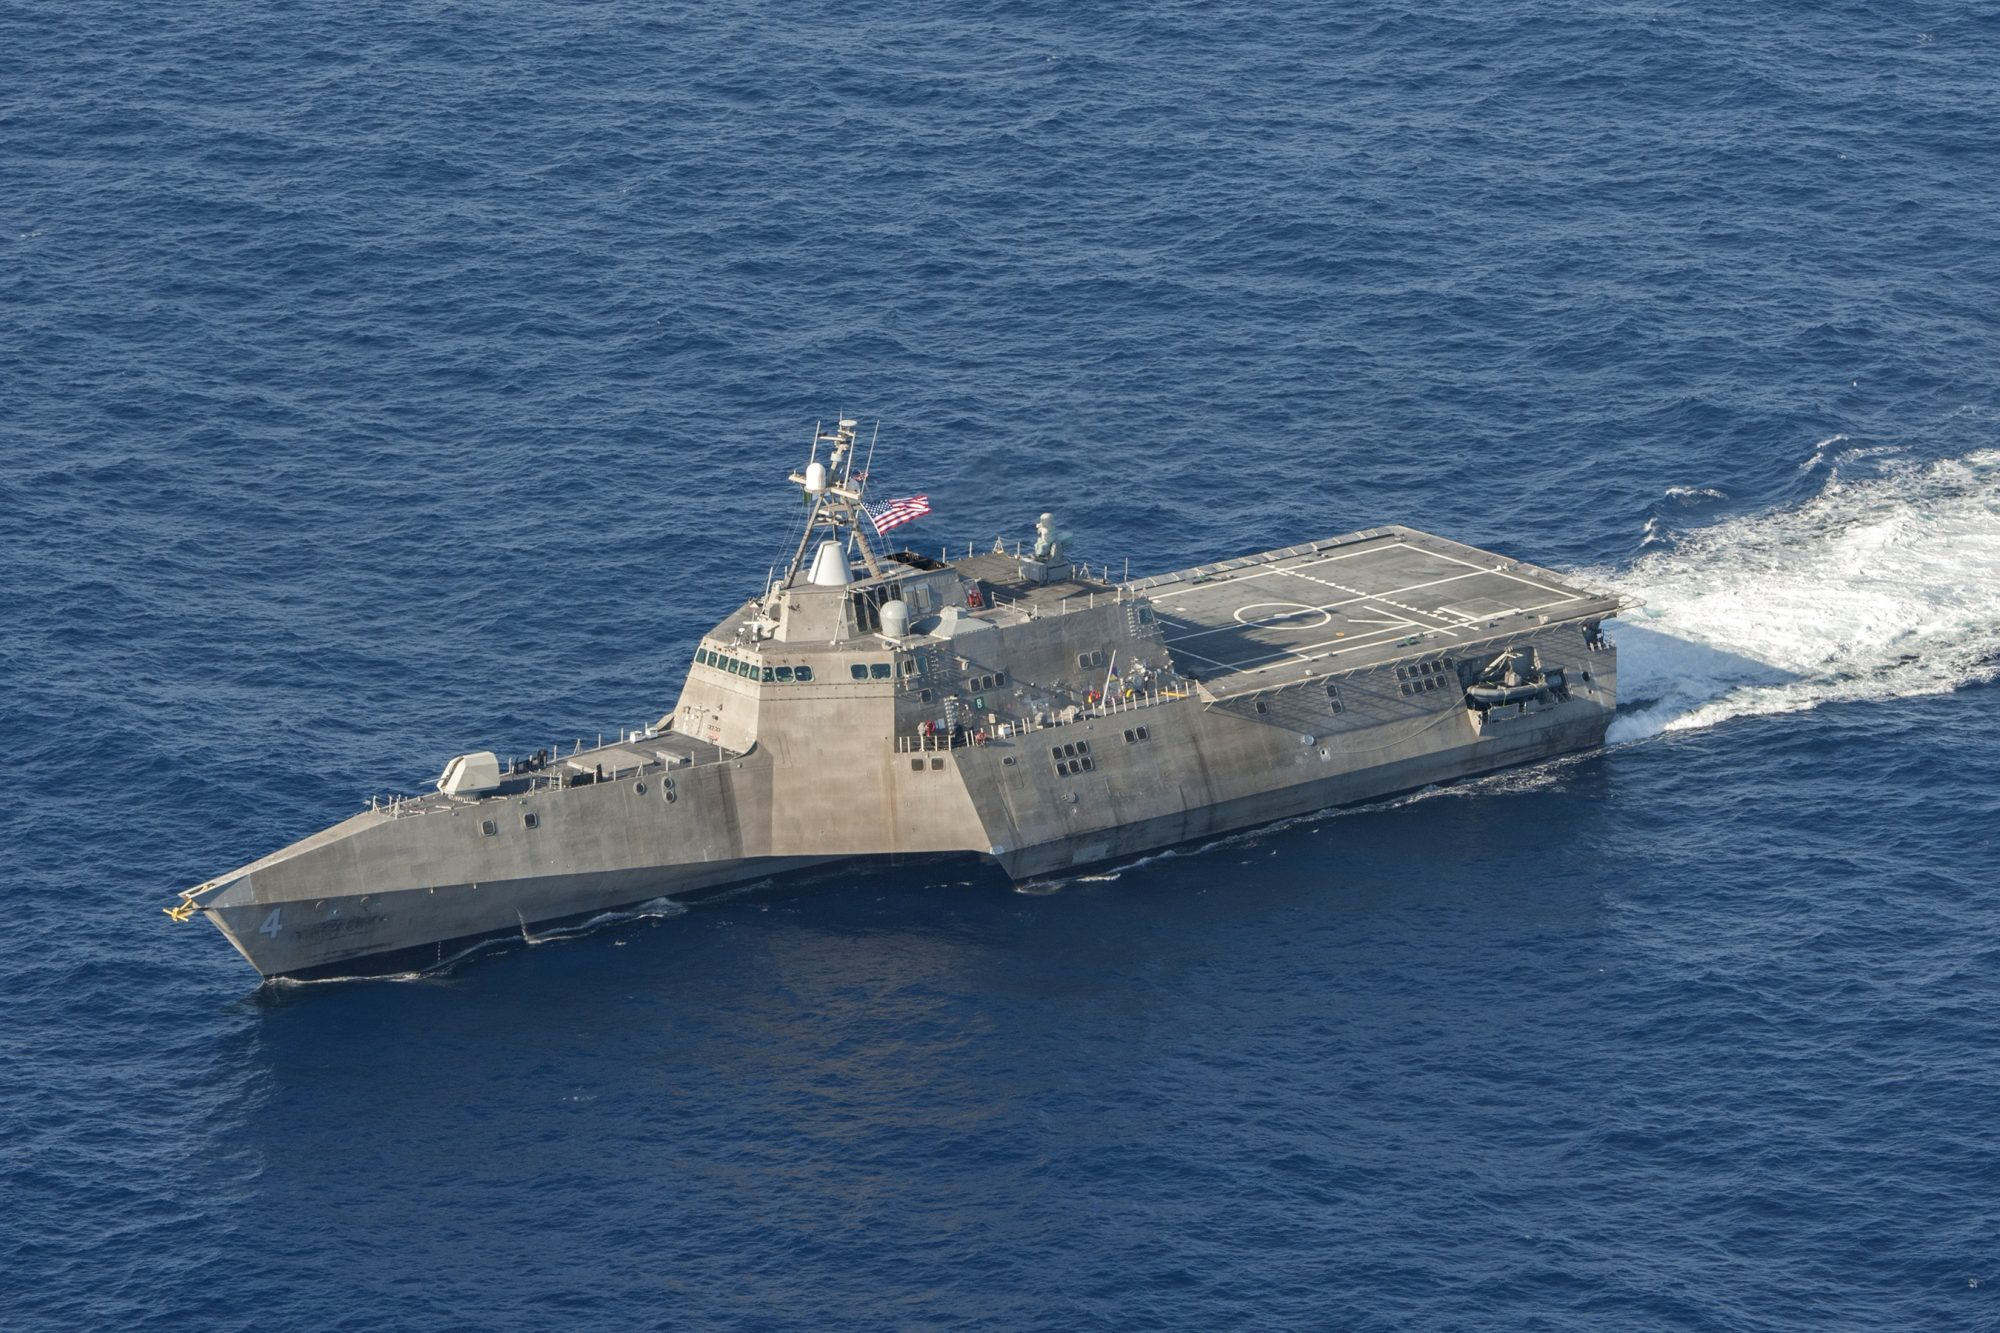 USS Coronado LCS-4 underway in April 2014